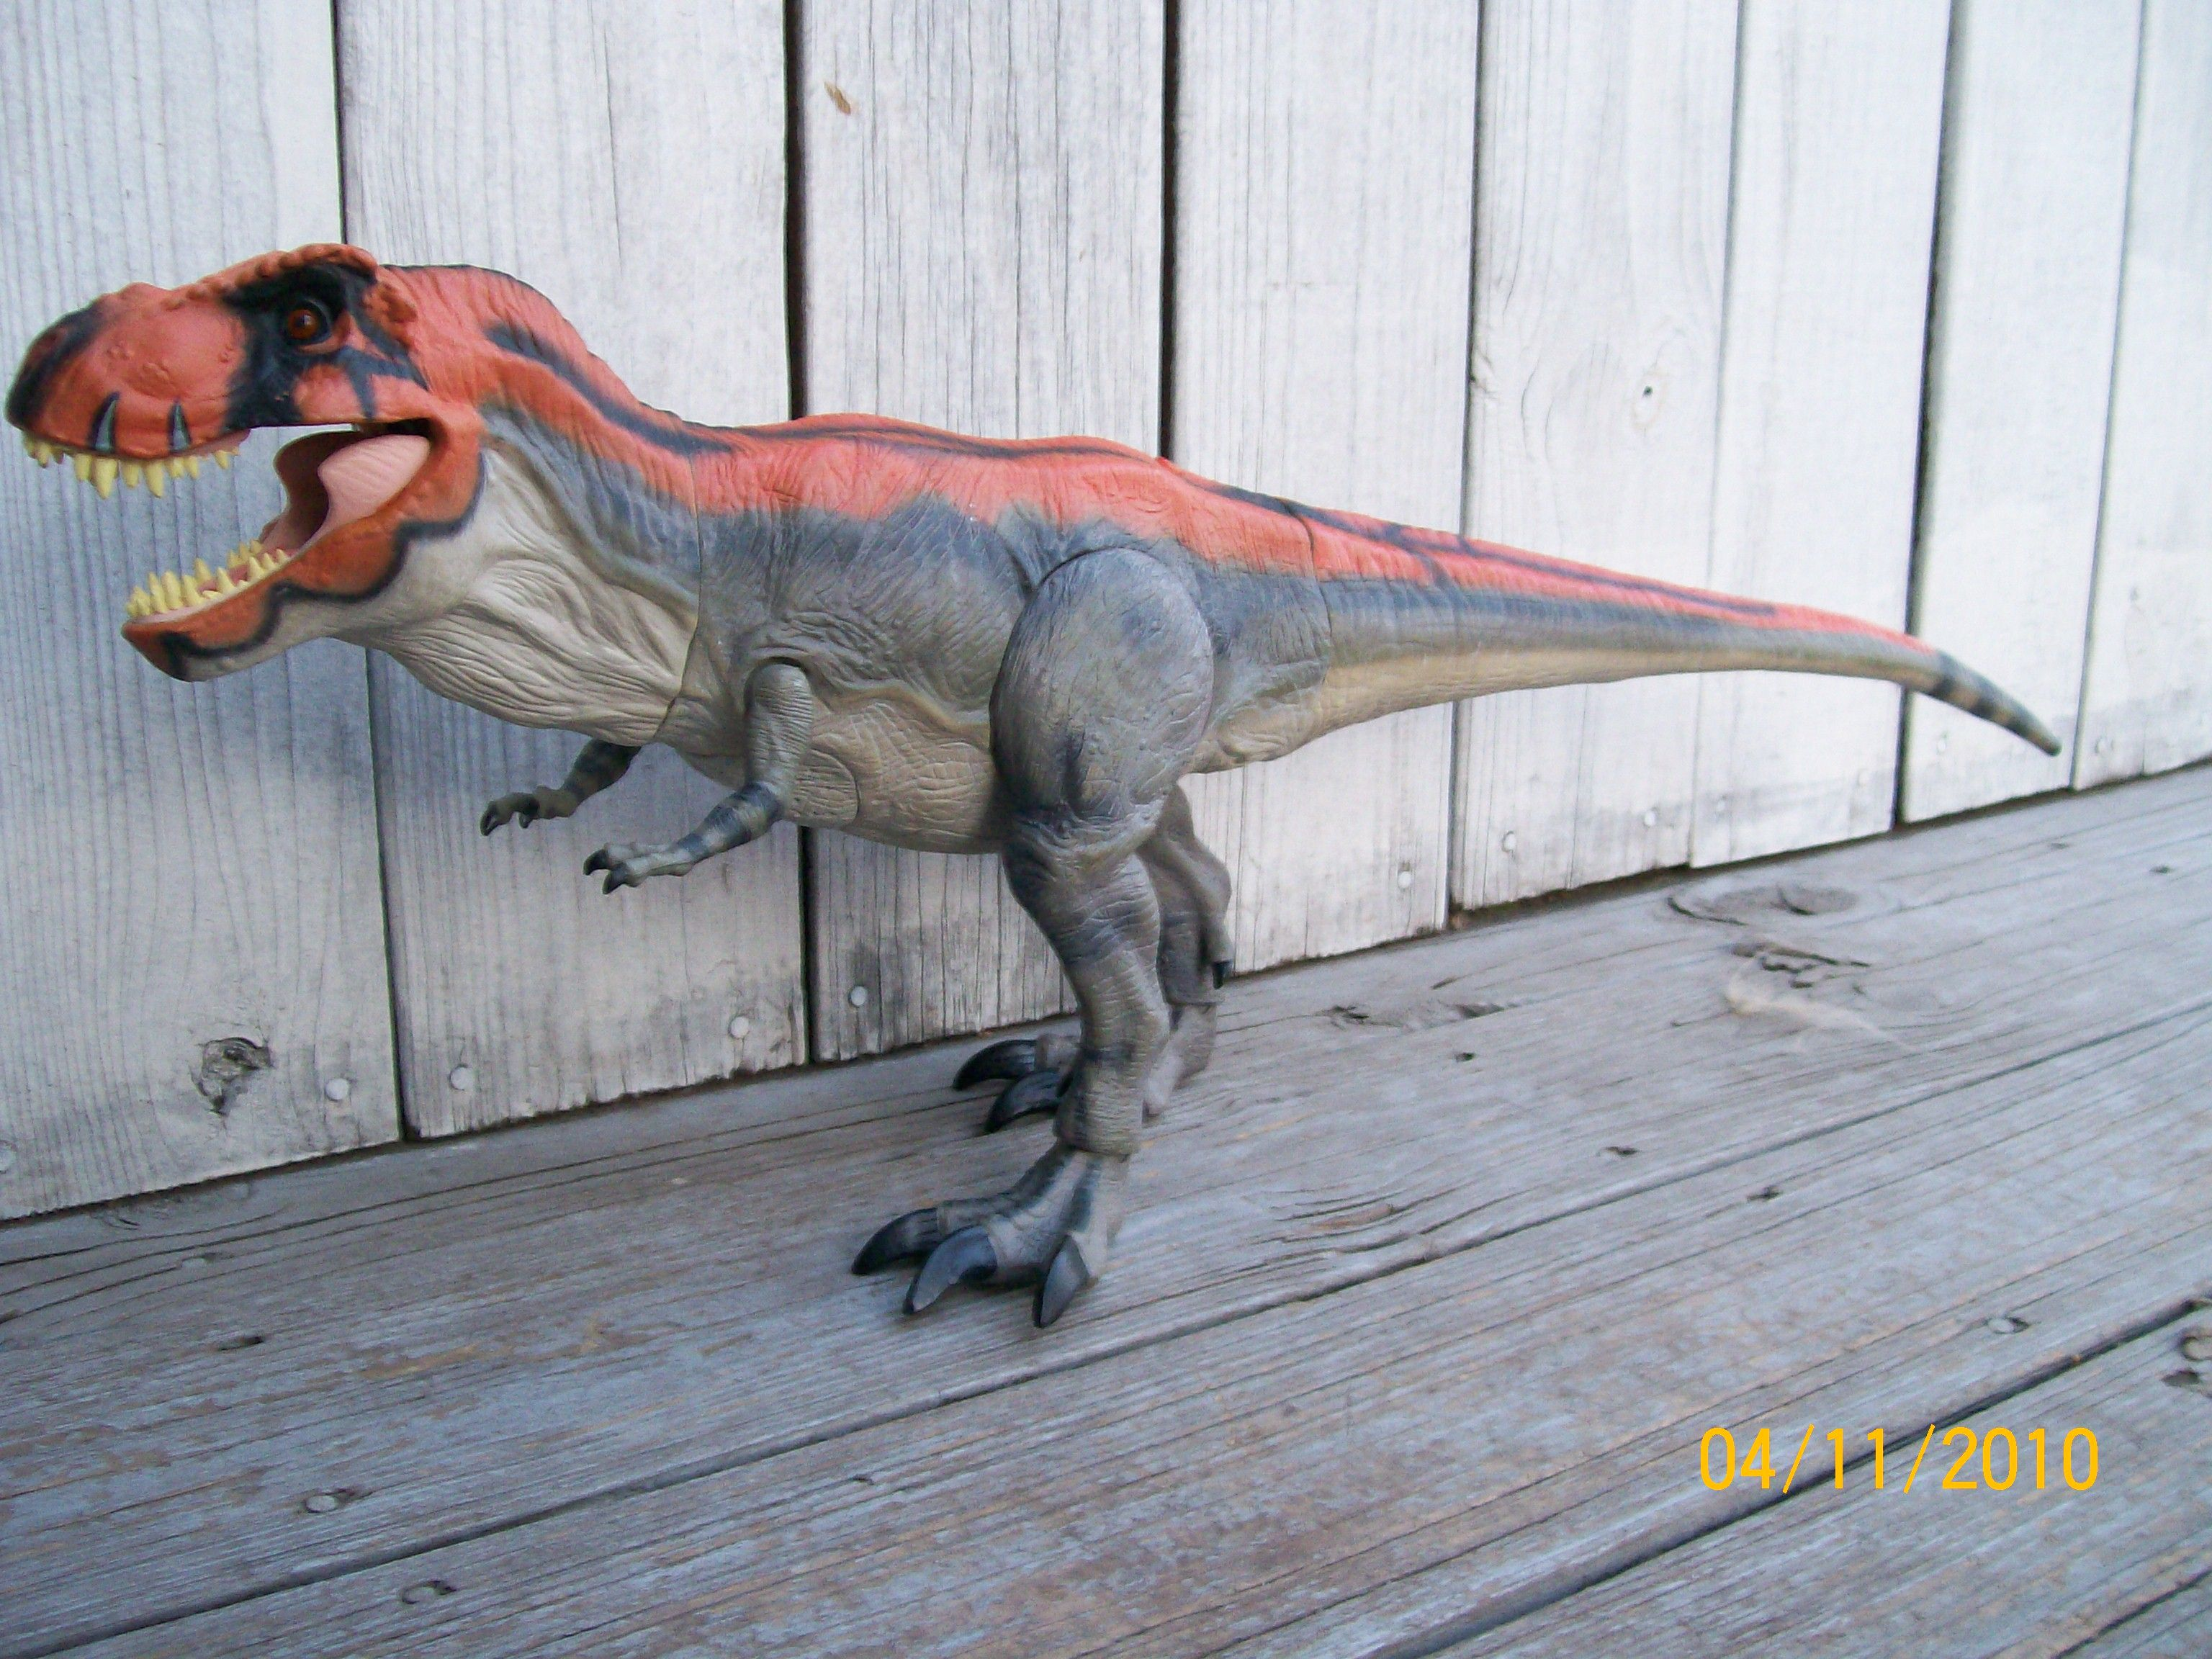 All jurassic park toys free project